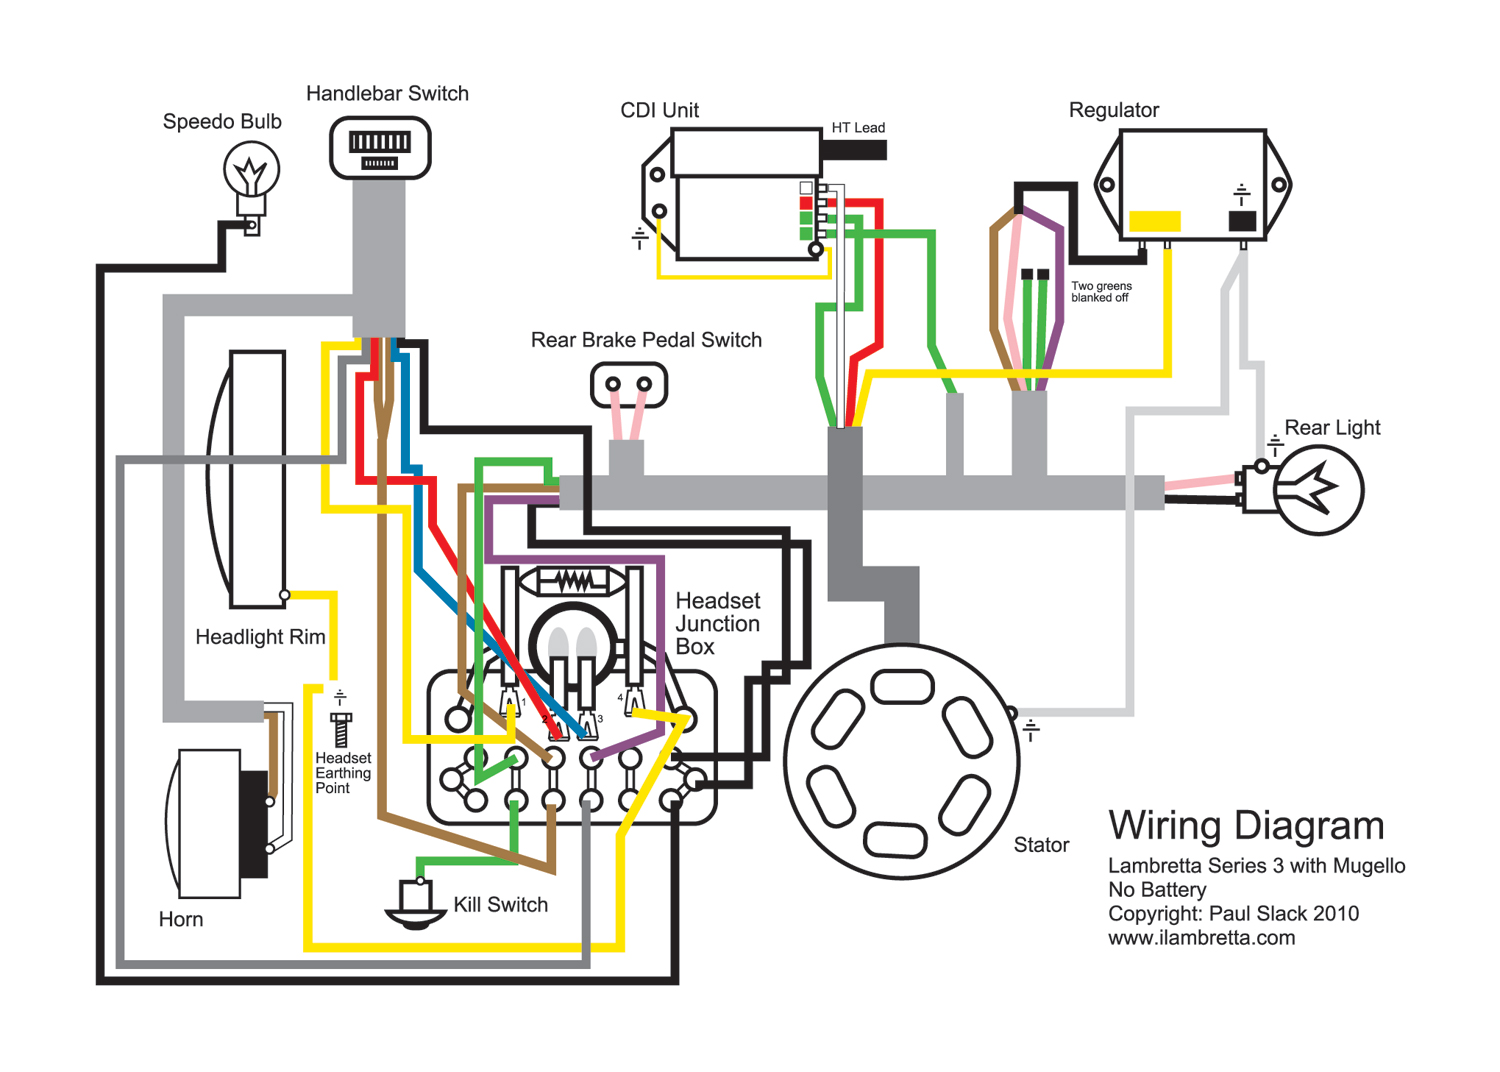 Wiring 2 12v Schematics Diagram Libraries Little Tikes Harness Lambretta Restoration For Mugello 12 Volt Upgradewiring Upgrade